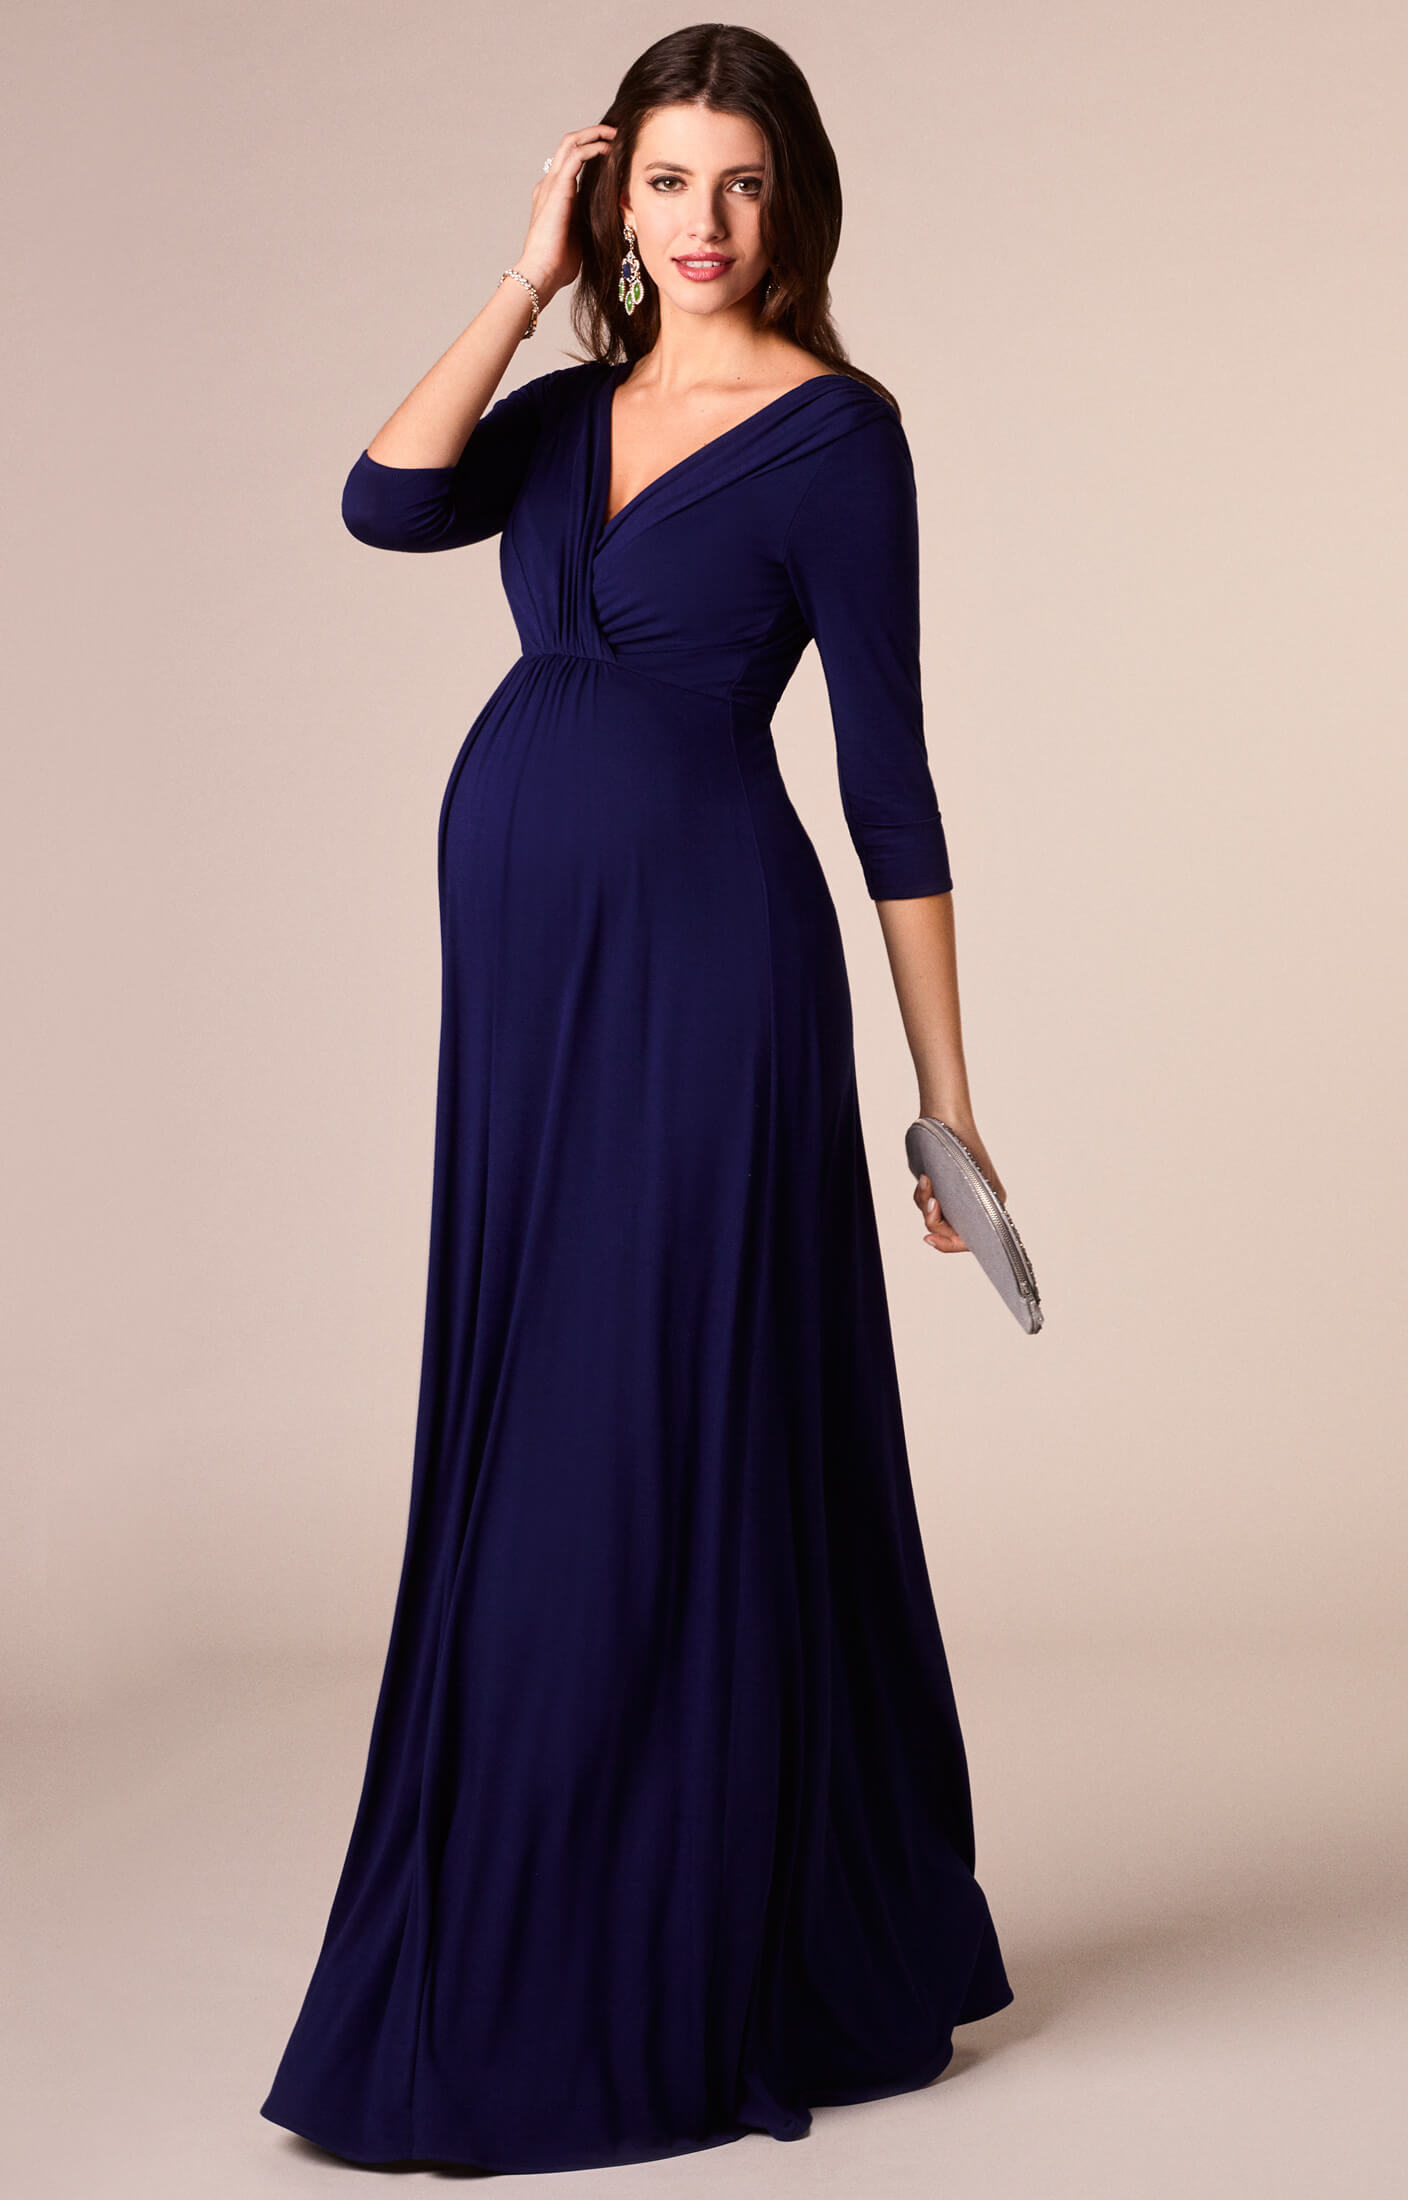 Maternity gowns by Sexy Mama Maternity. A % mom-run shop located in the USA. Featuring trendy, sophisticated and sexy handmade maternity gowns, maternity dresses, maternity clothing and the latest in motherhood trends.